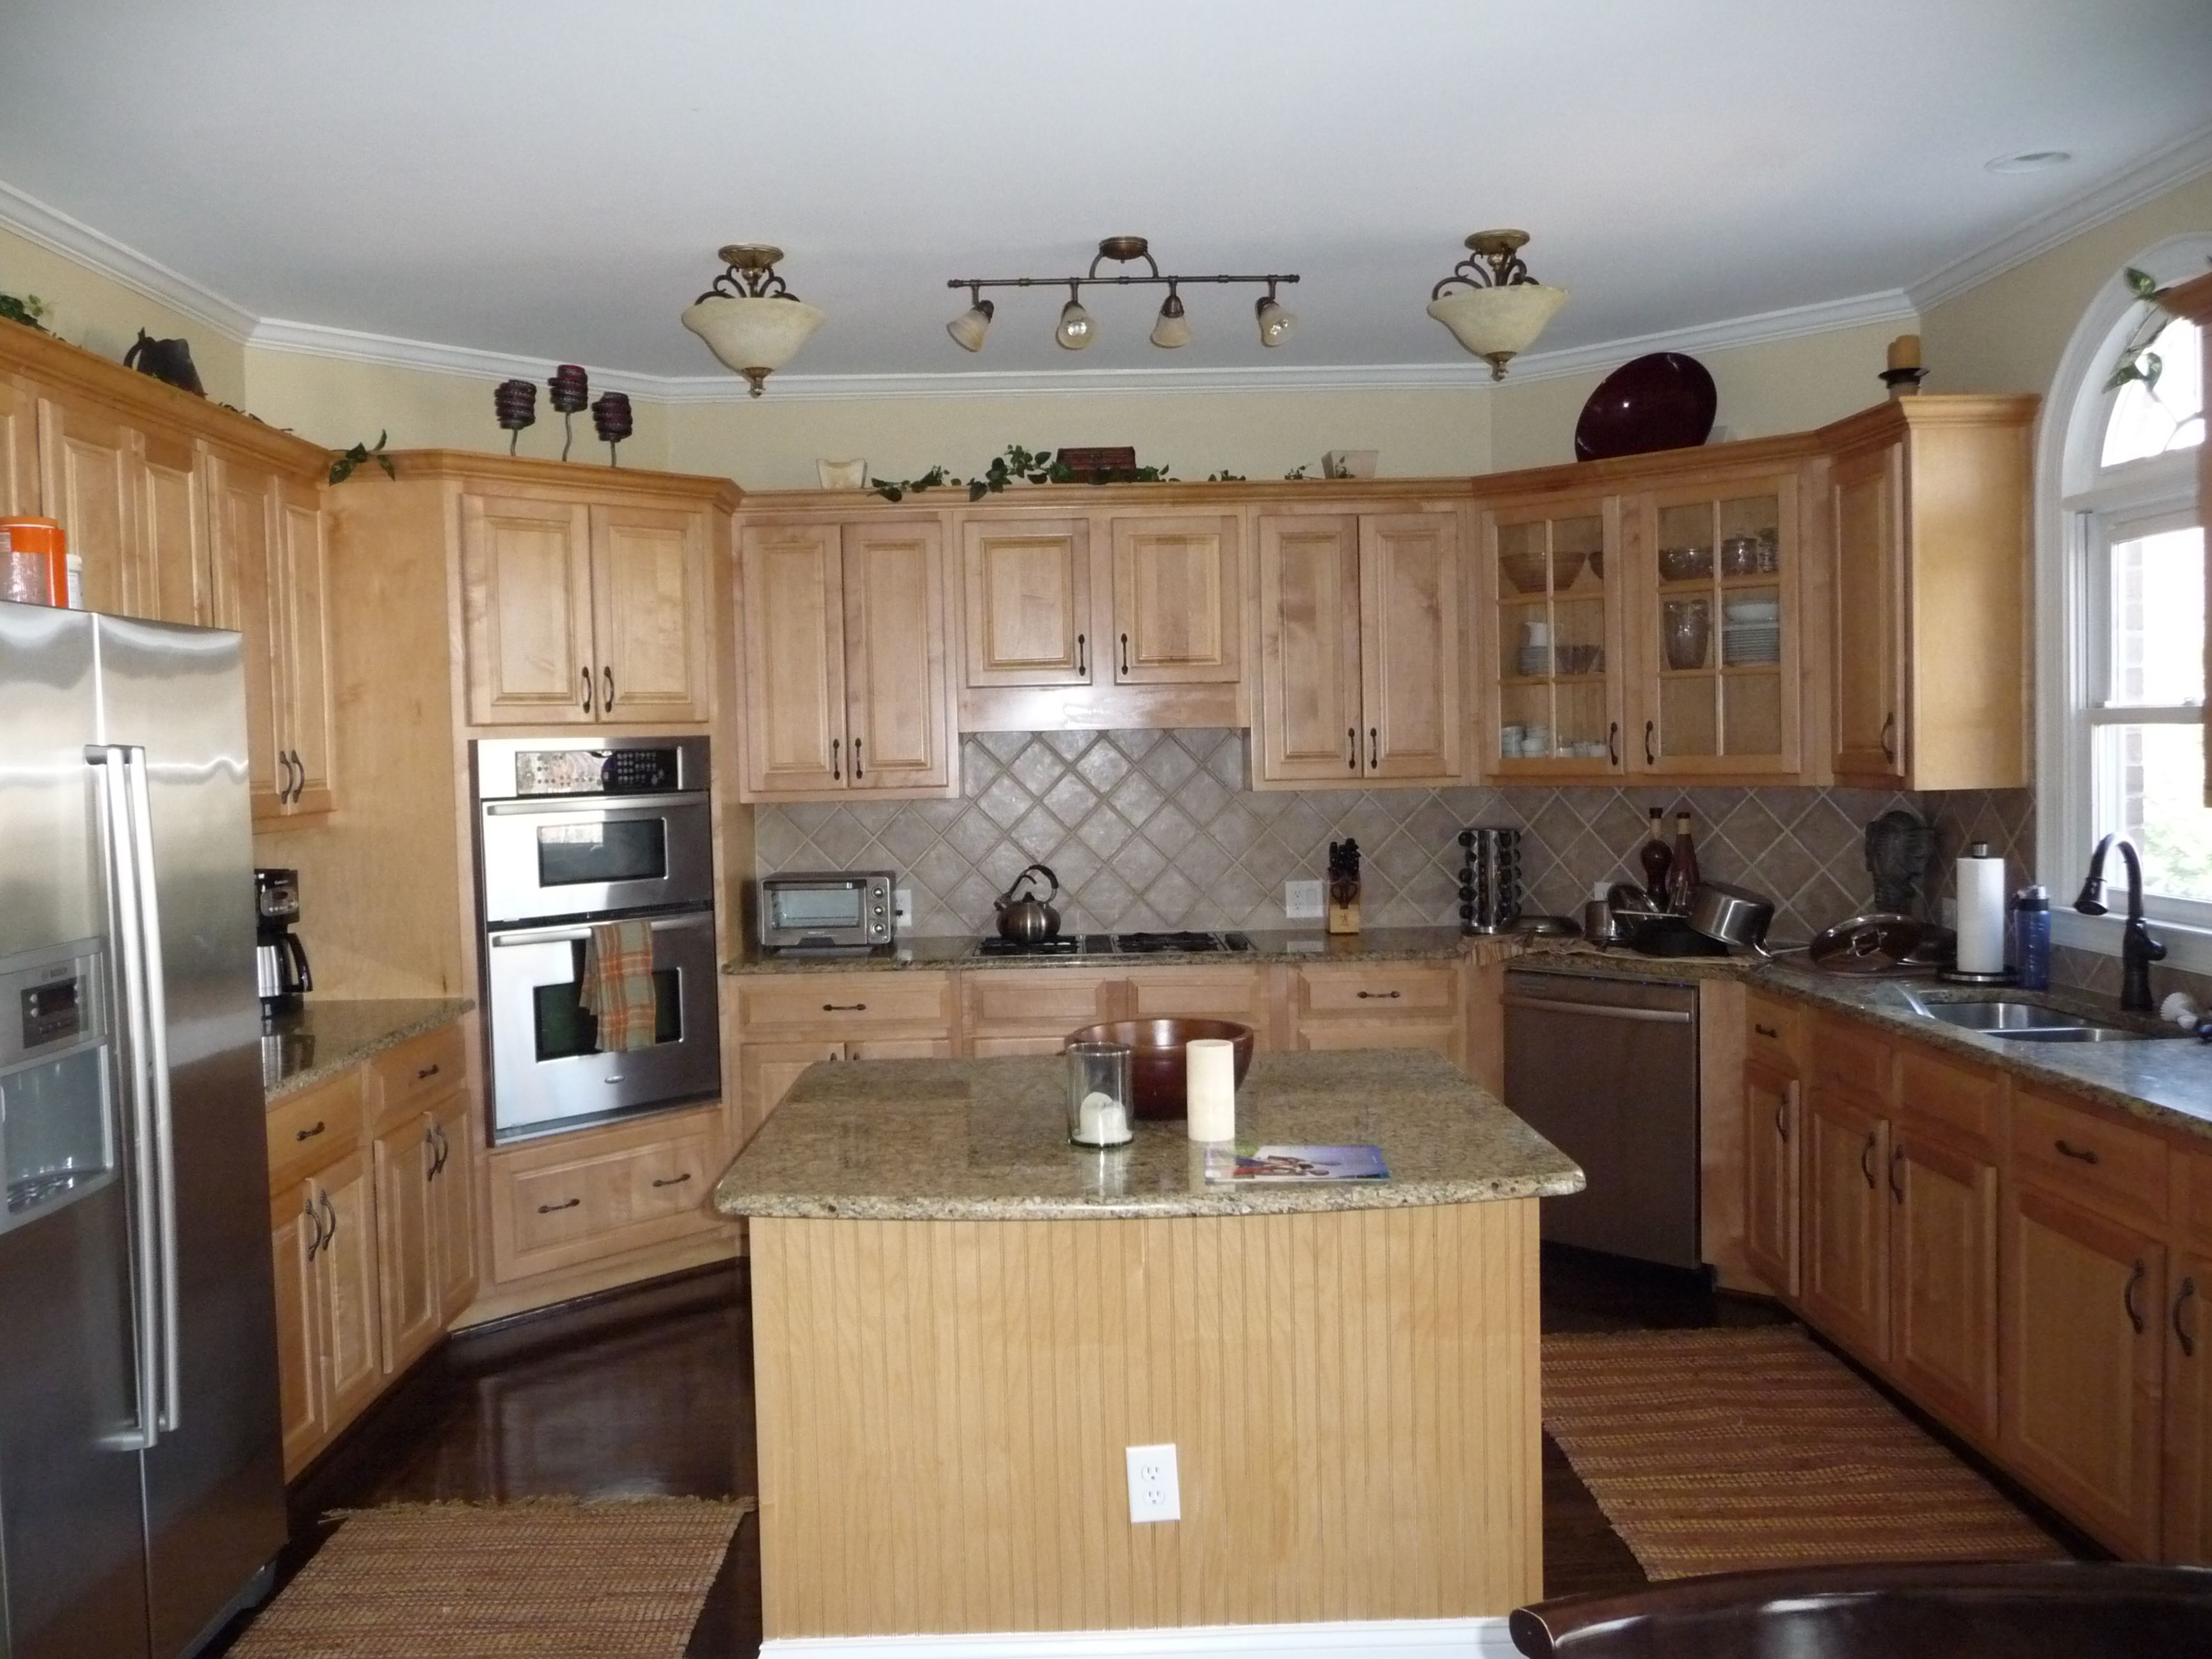 light maple kitchen cabinets standard sink size natural red oak floors were sanded and stained